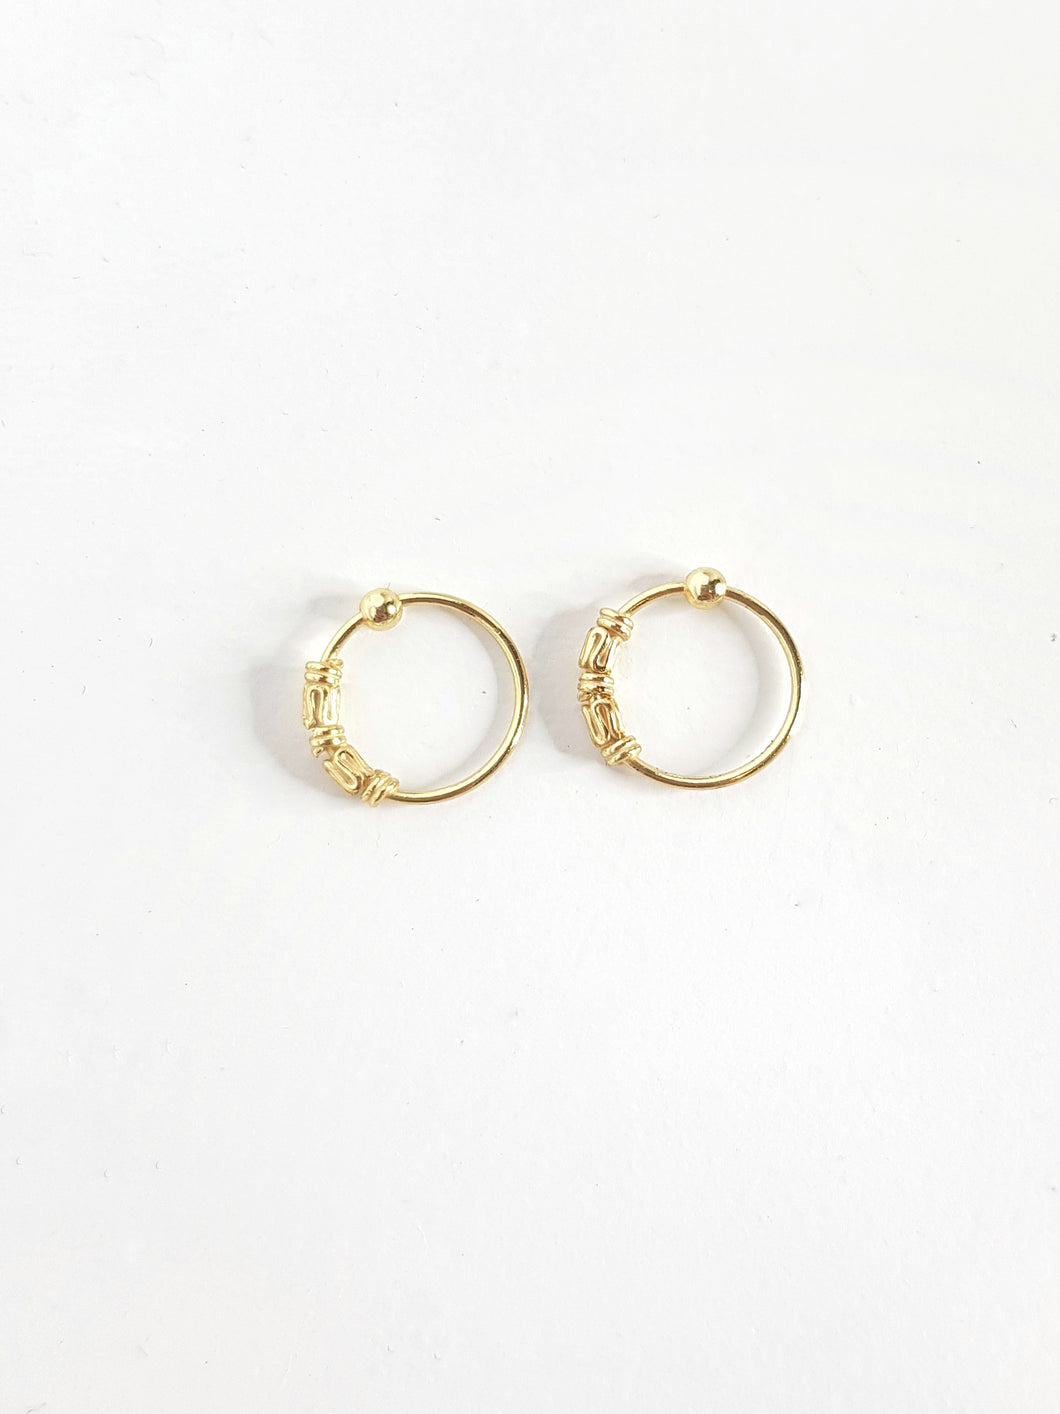 10mm Gold Plated Silver Beaded Hoops